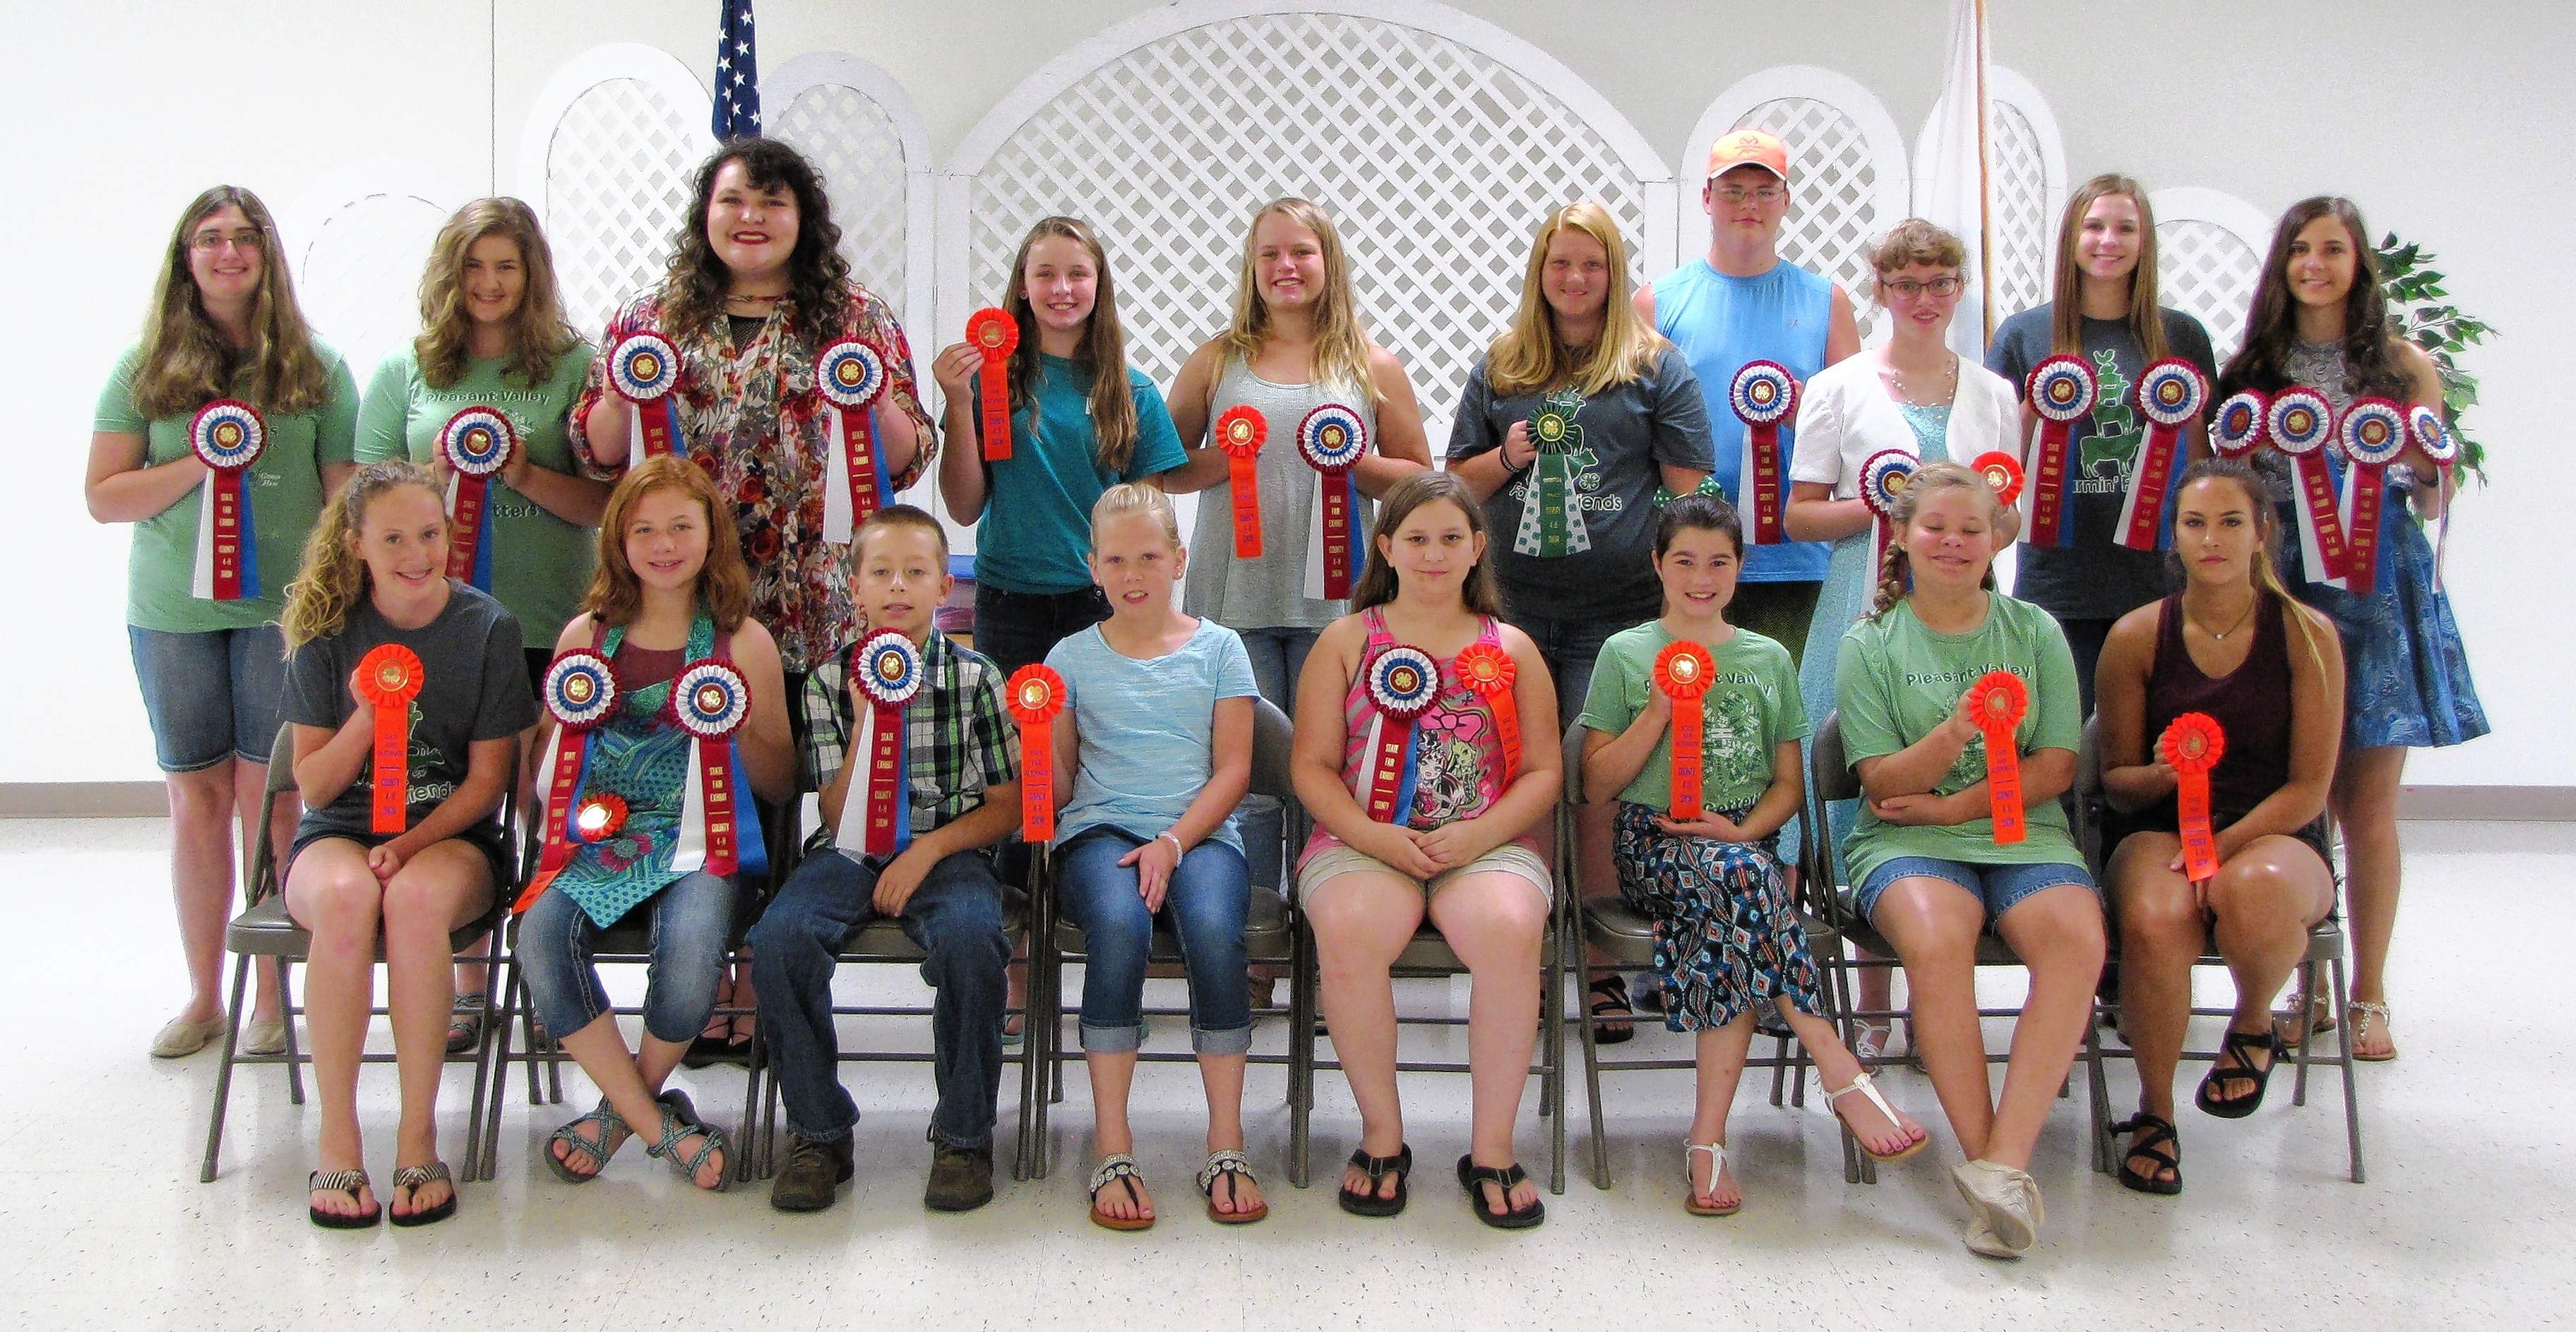 State fair, state fair alternate and county champion ribbon winners are pictured at the Saline County 4-H Home and Family Show. Exhibitors excelled with their foods, STEAM (Science, Technology, Engineering, Arts and Math) clothing, shopping in style, interior design, child development, candy making and food decorating projects.